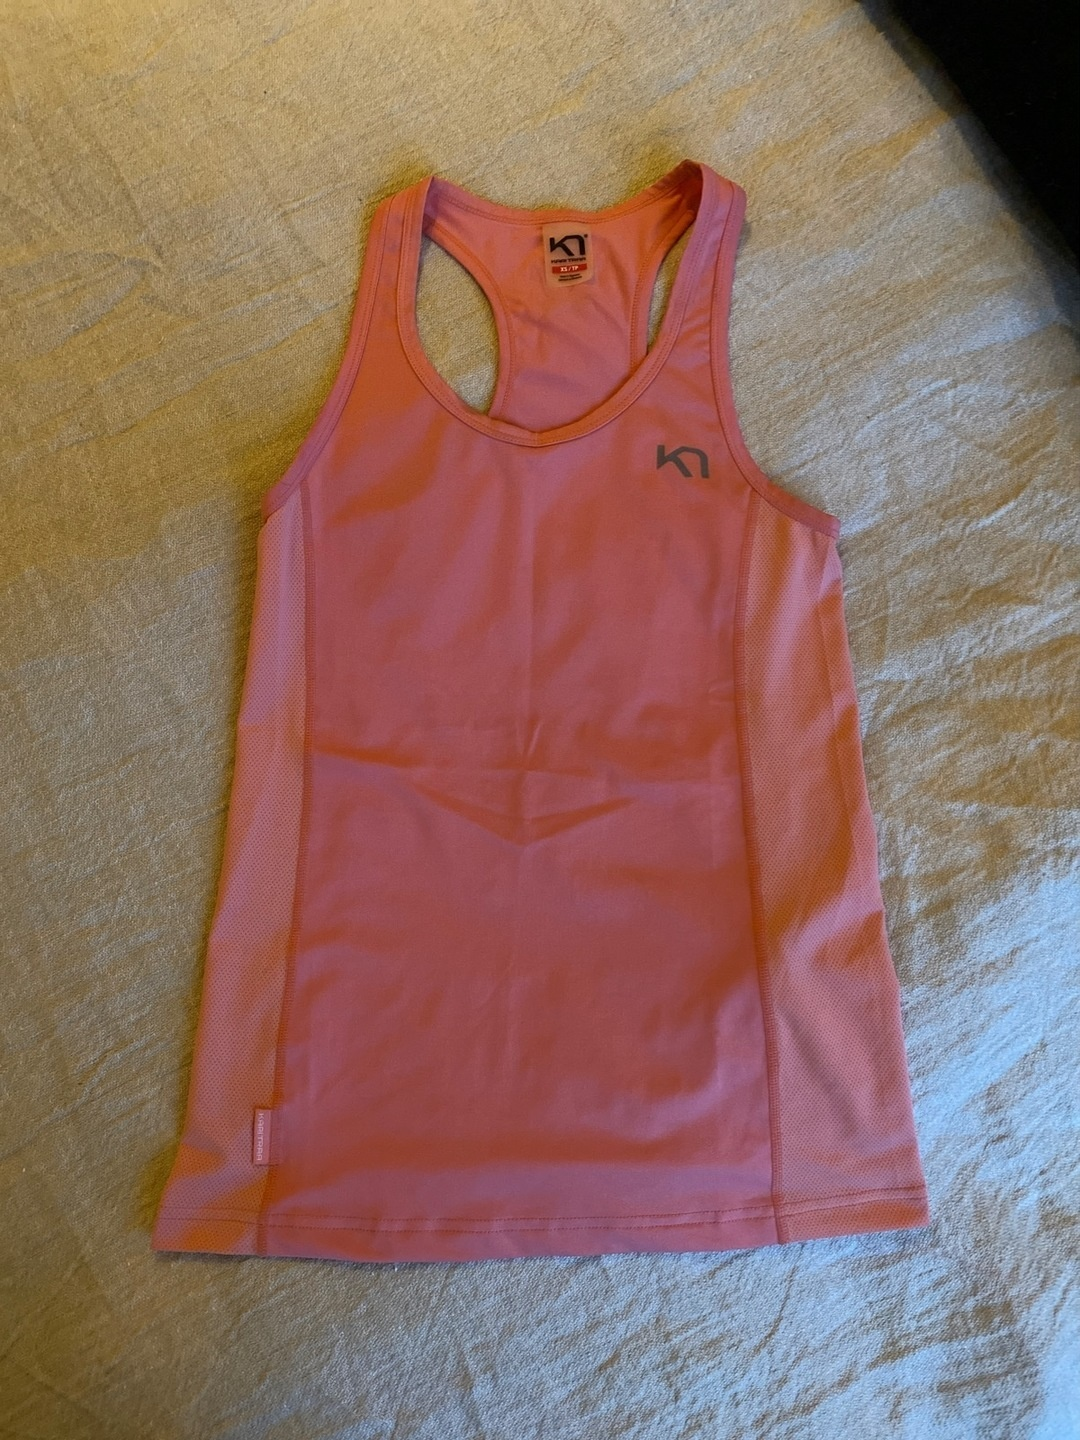 Women's sportswear - KARI TRAA photo 1